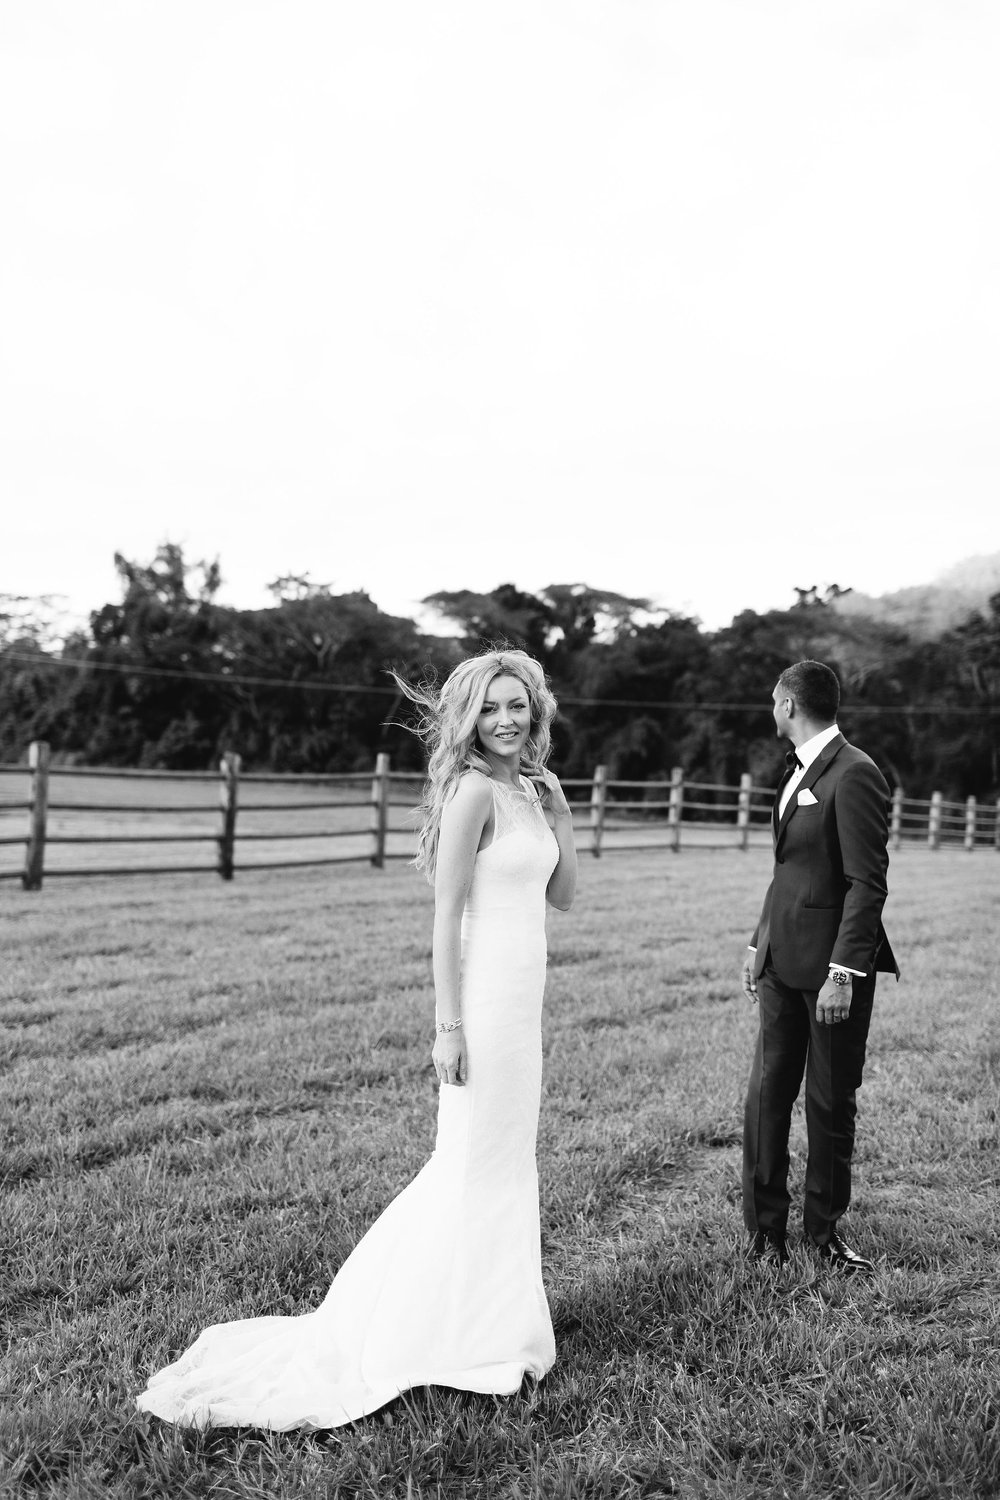 wedding_photography_port_douglas_0146-min.jpg